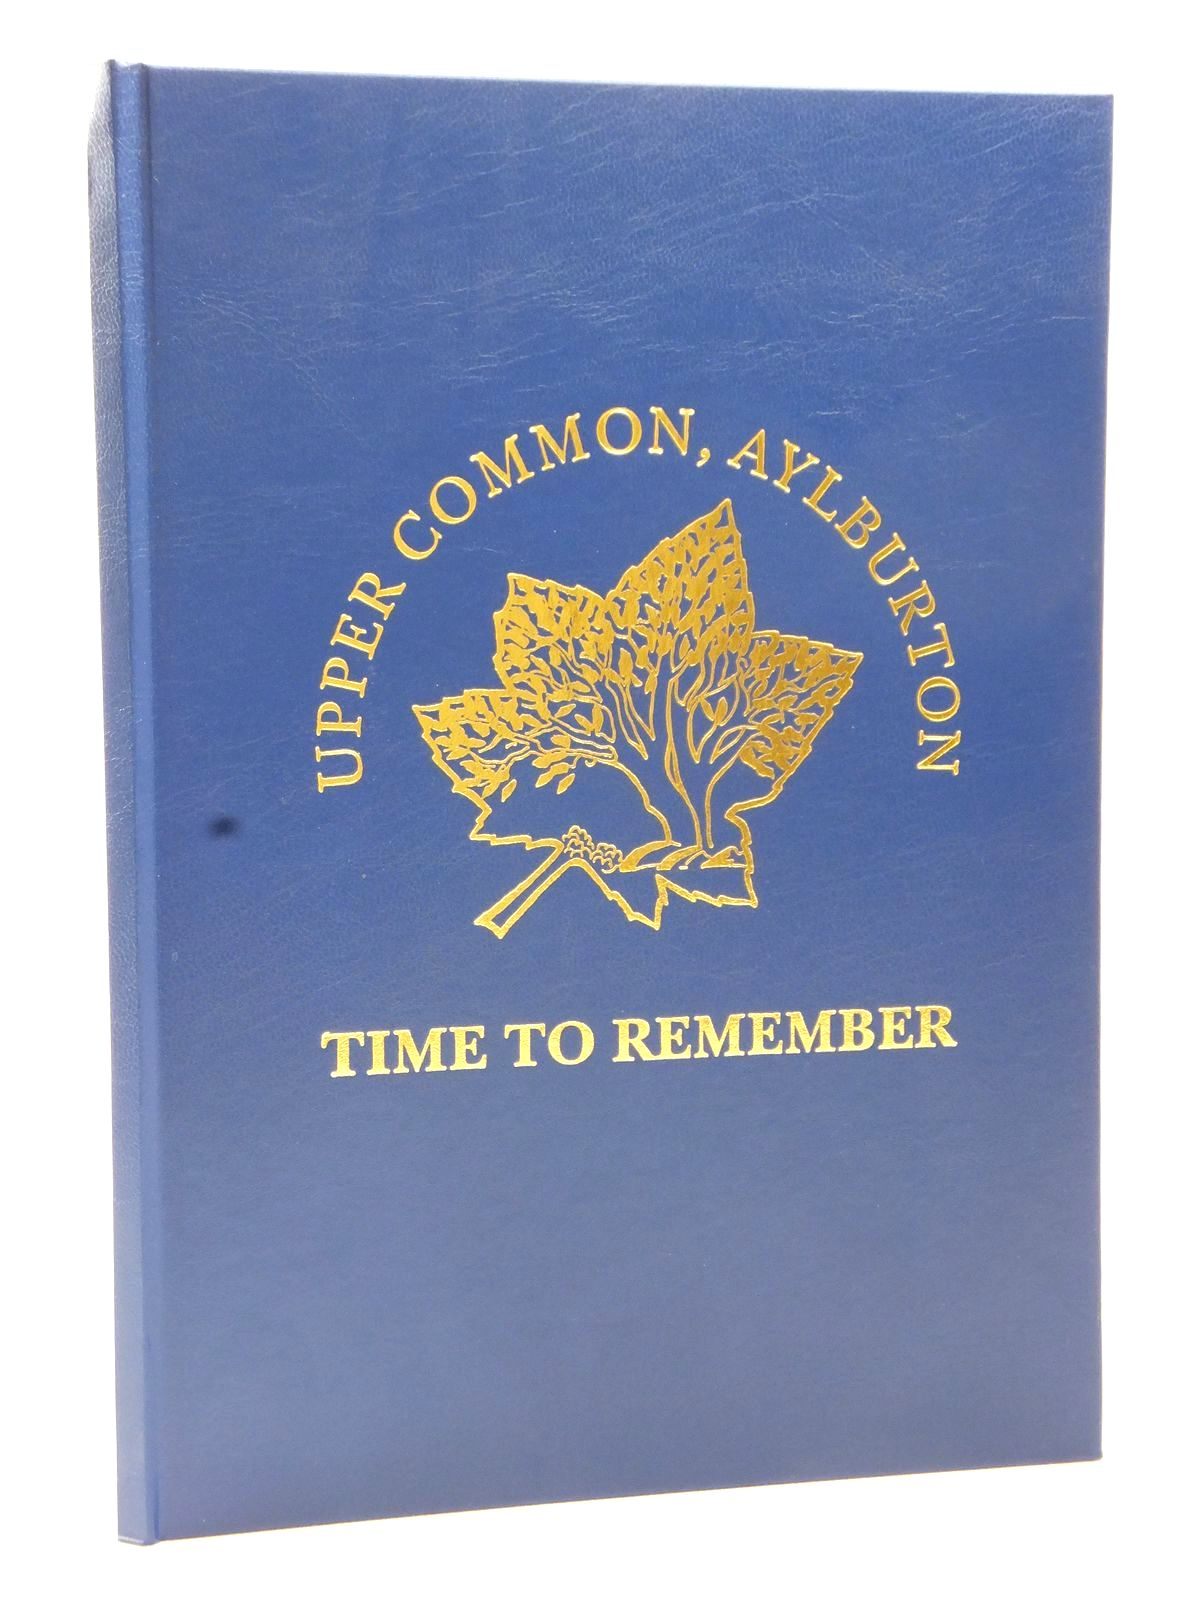 Photo of TIME TO REMEMBER UPPER COMMON, AYLBURTON written by Hodgkinson, Pat published by Aylburton Upper Common Association (STOCK CODE: 1609000)  for sale by Stella & Rose's Books